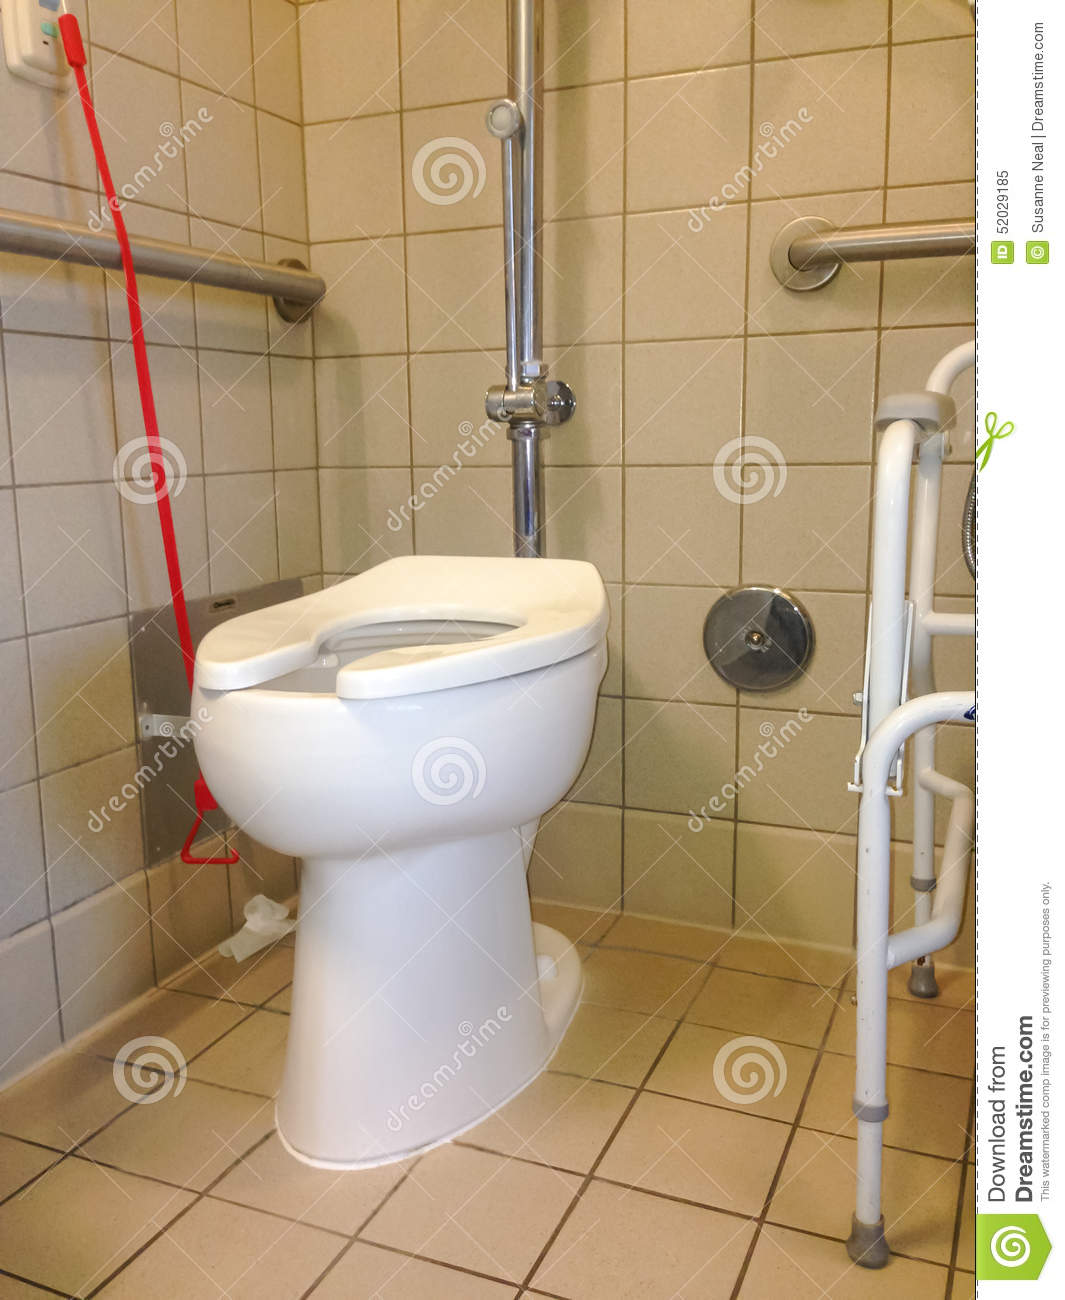 Hospital Toilet With Call-for-assistance Bell Stock Image - Image of ...